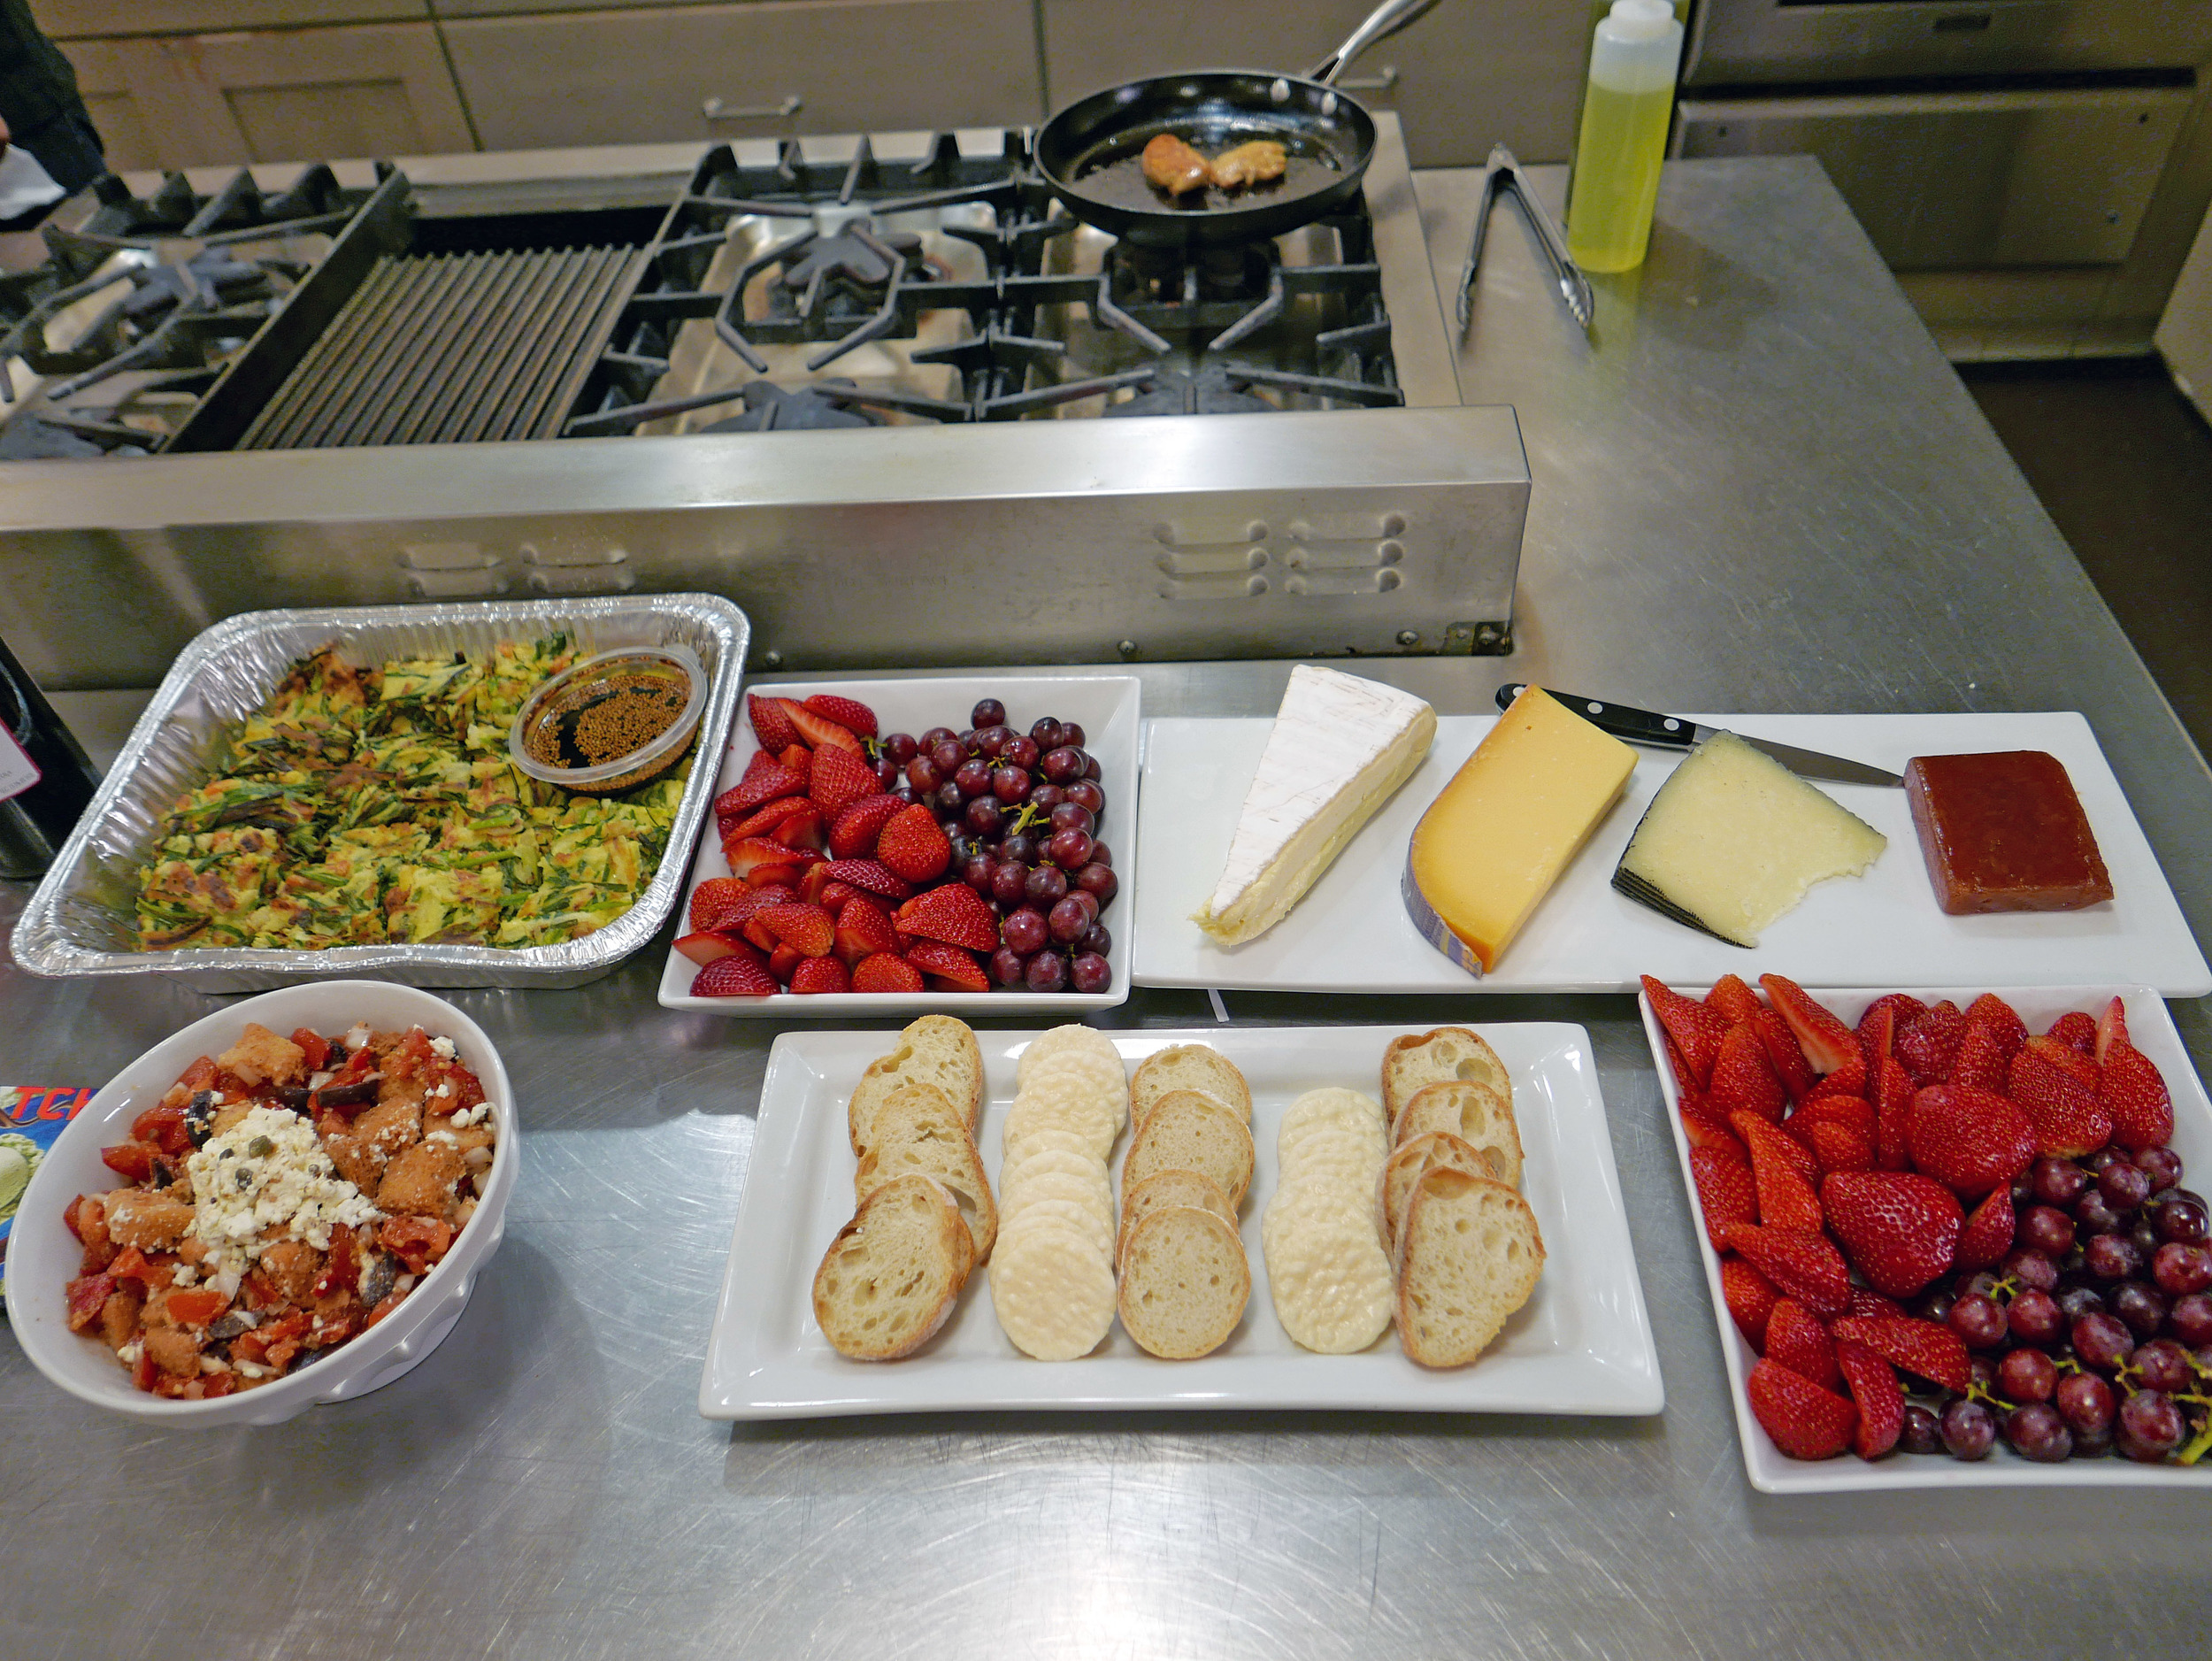 stanford-food-experience-design_18471761946_o.jpg